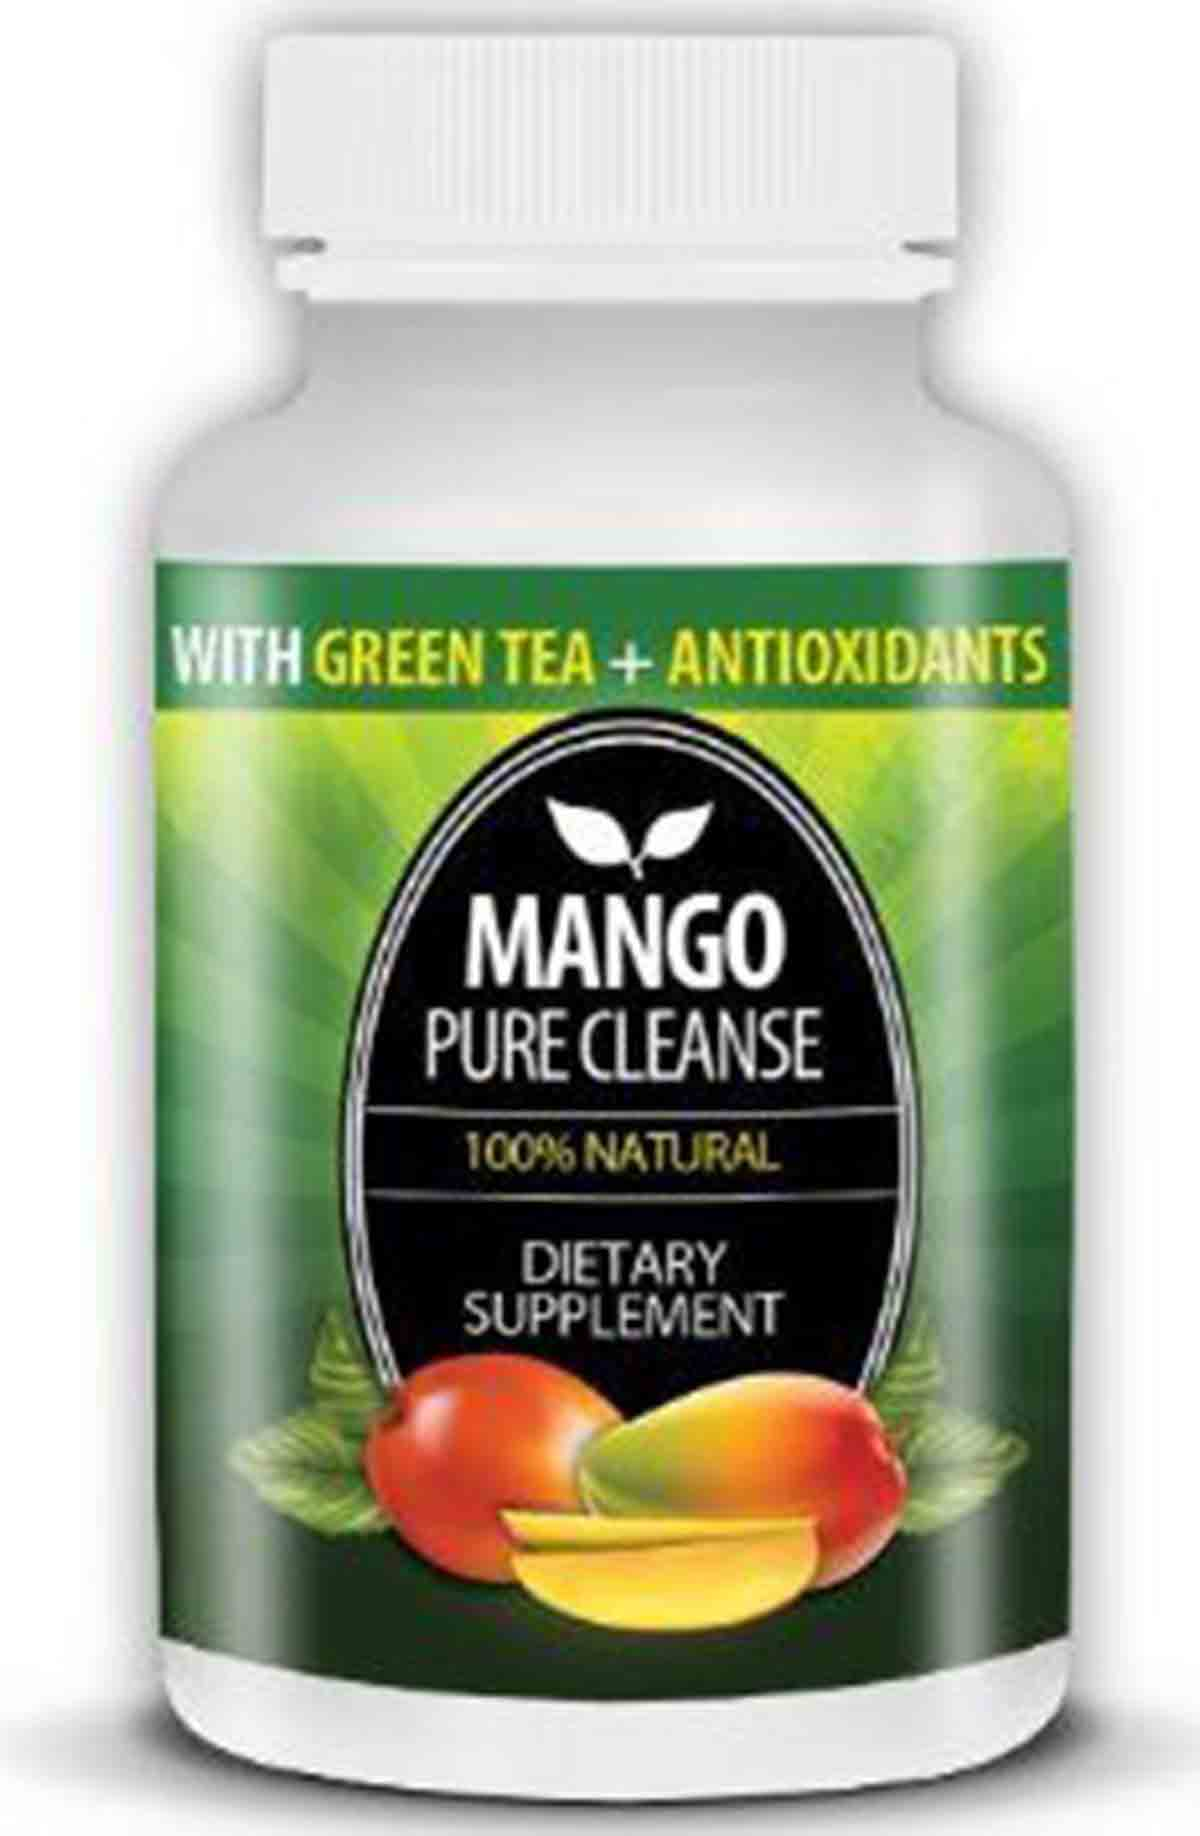 mango-pure-cleanse